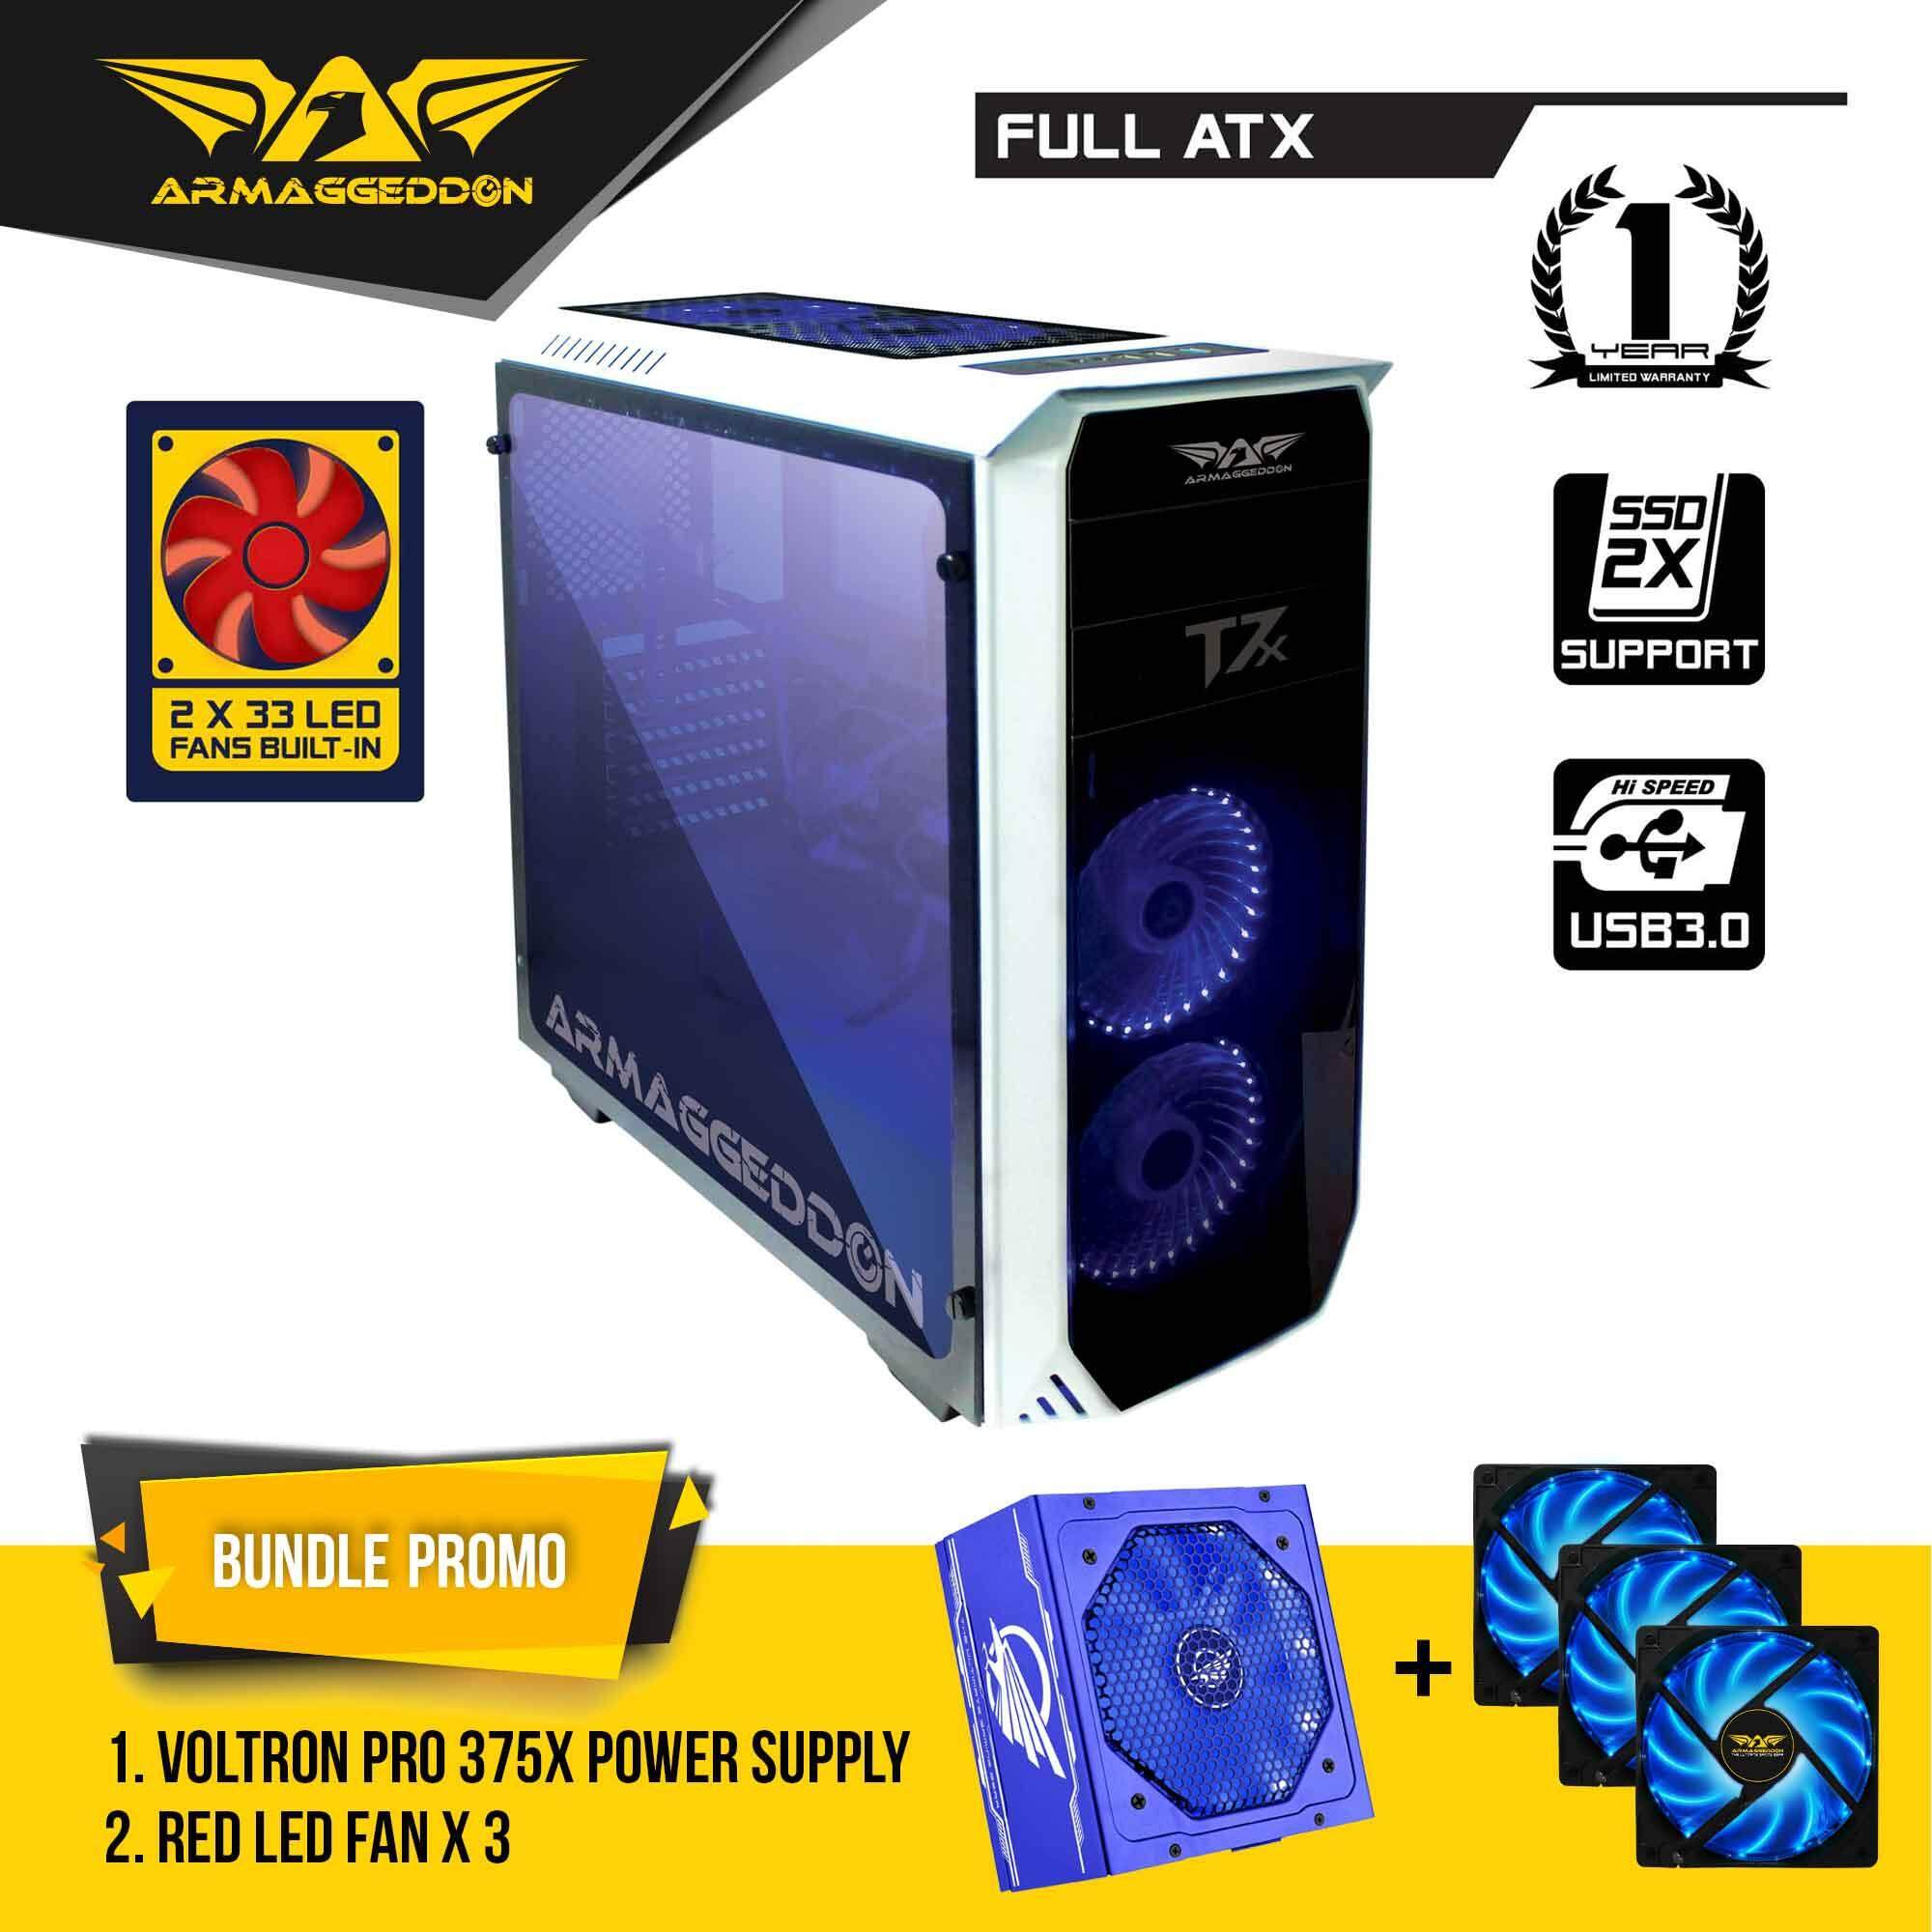 Armaggeddon T7x Full ATX Gaming Case with Voltron Pro Power Supply and Cooling Fan Bundle Promo Malaysia